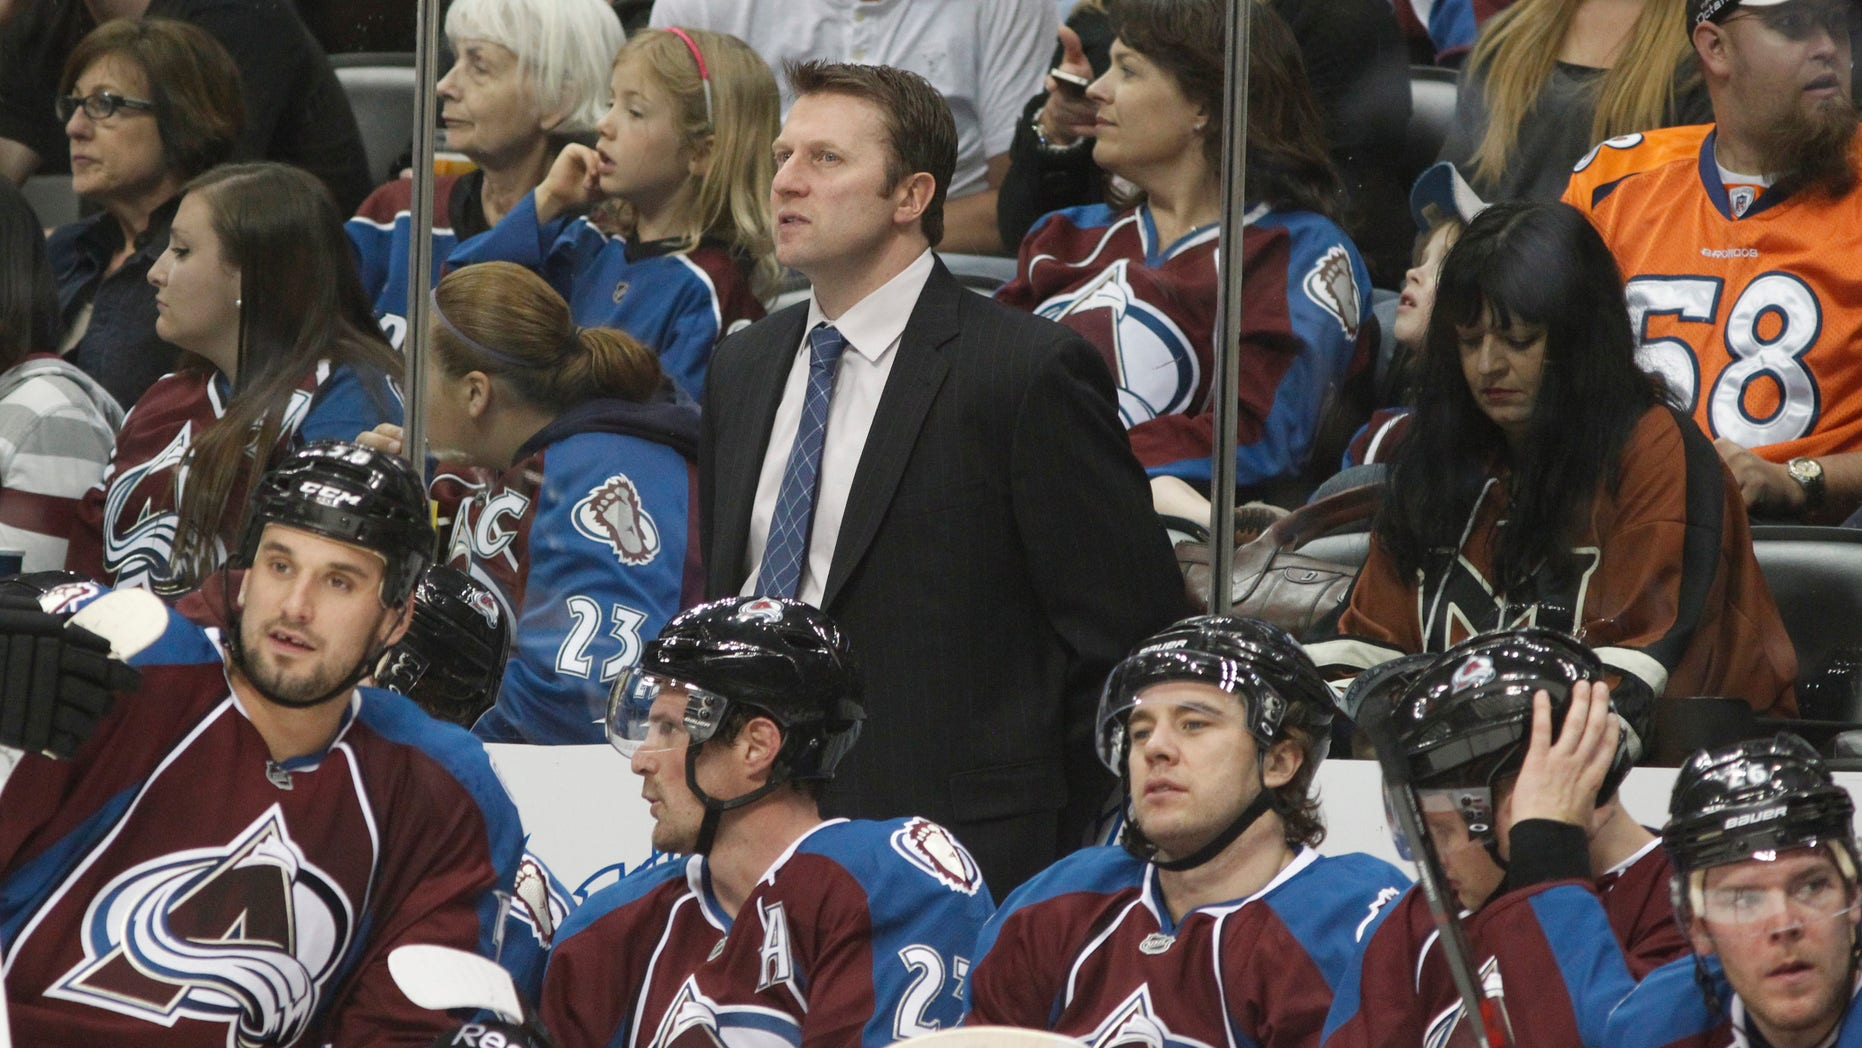 Colorado Avalanche head coach Joe Sacco, back, looks on as his players take a break during a time out against the Minnesota Wild in the second period of an NHL hockey game in Denver on Saturday, April 27, 2013. (AP Photo/David Zalubowski)